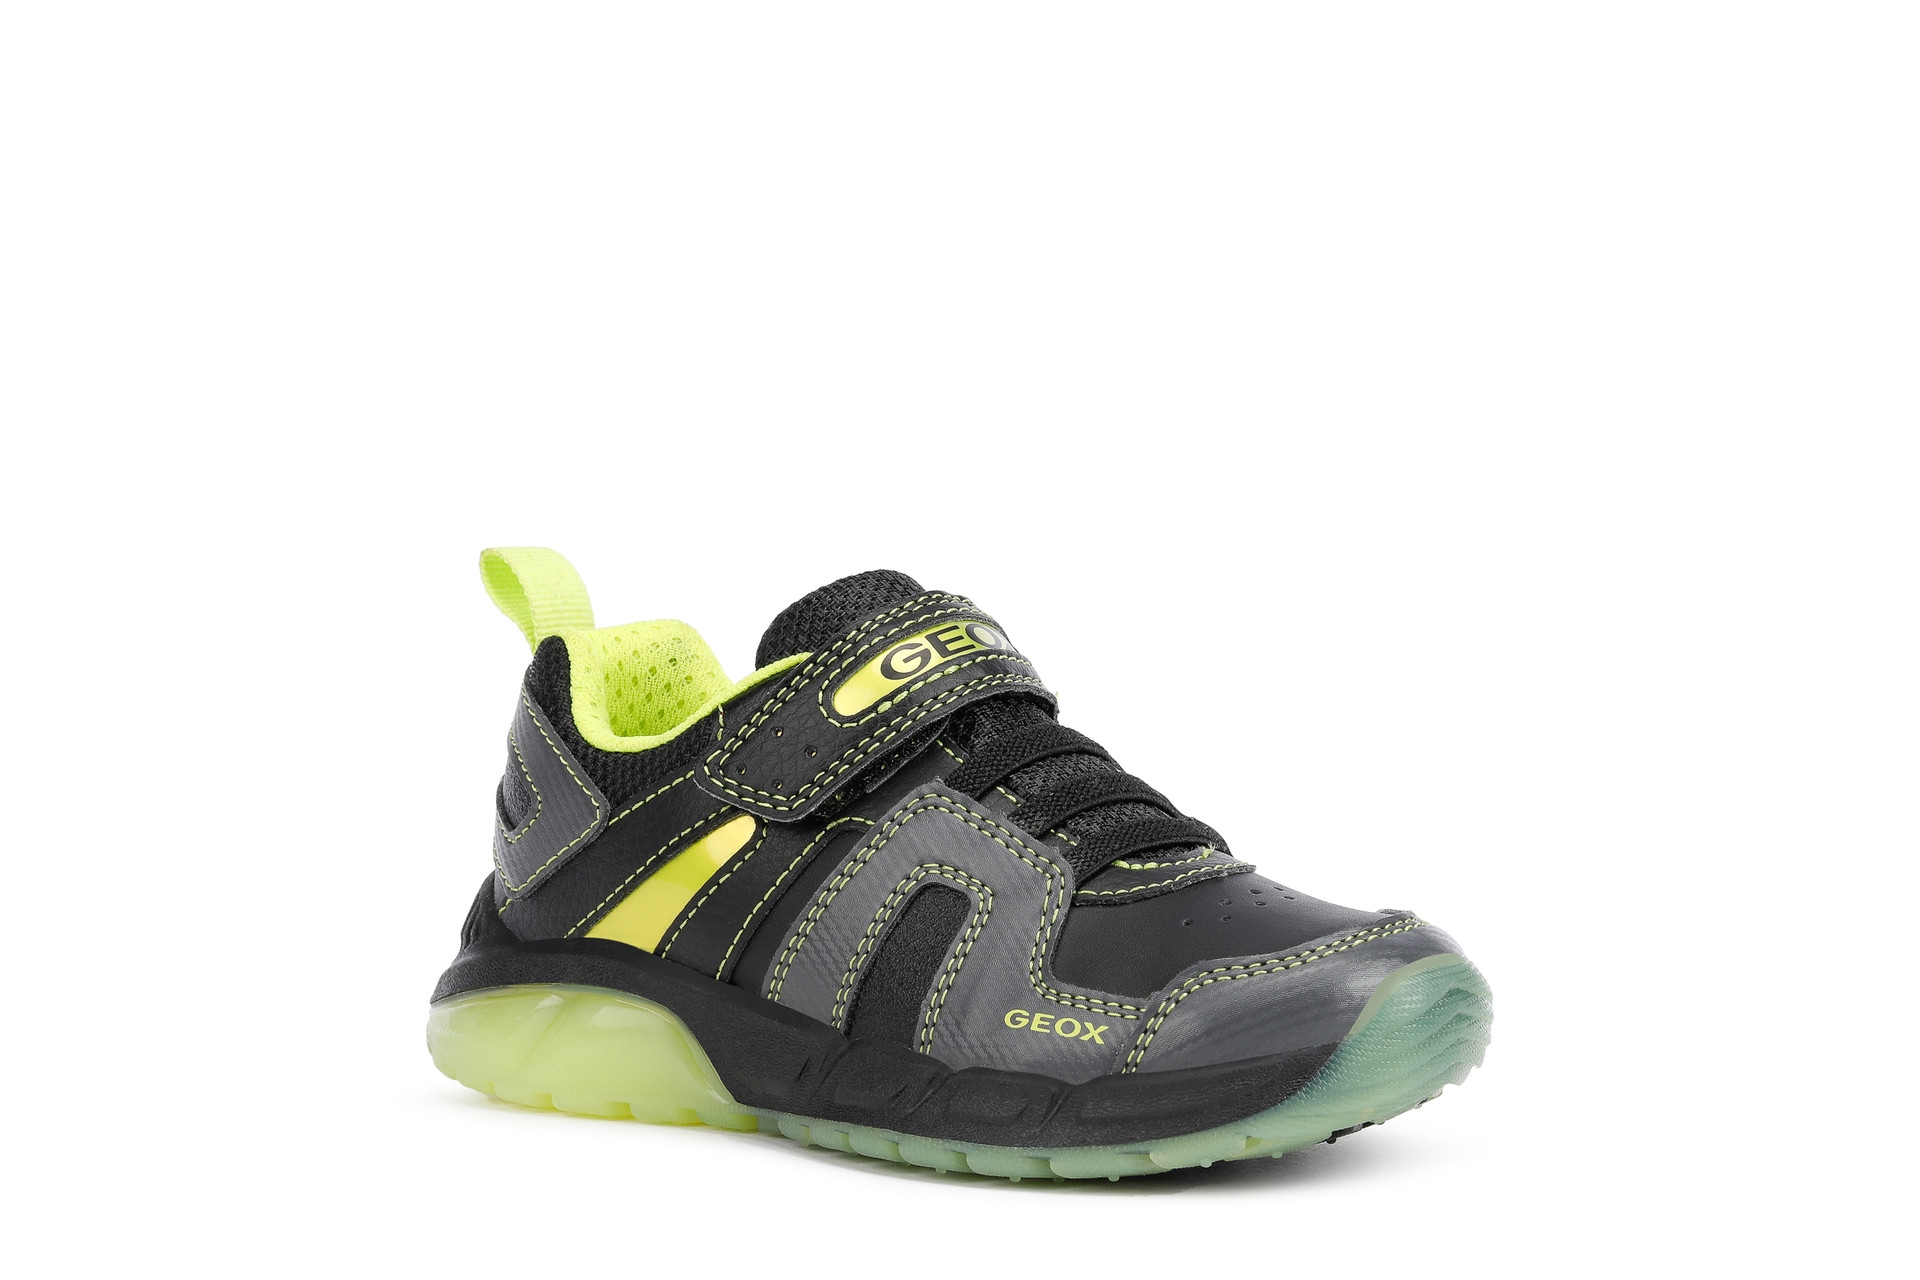 Geox Boys Trainer   Spaziale   Black Lime